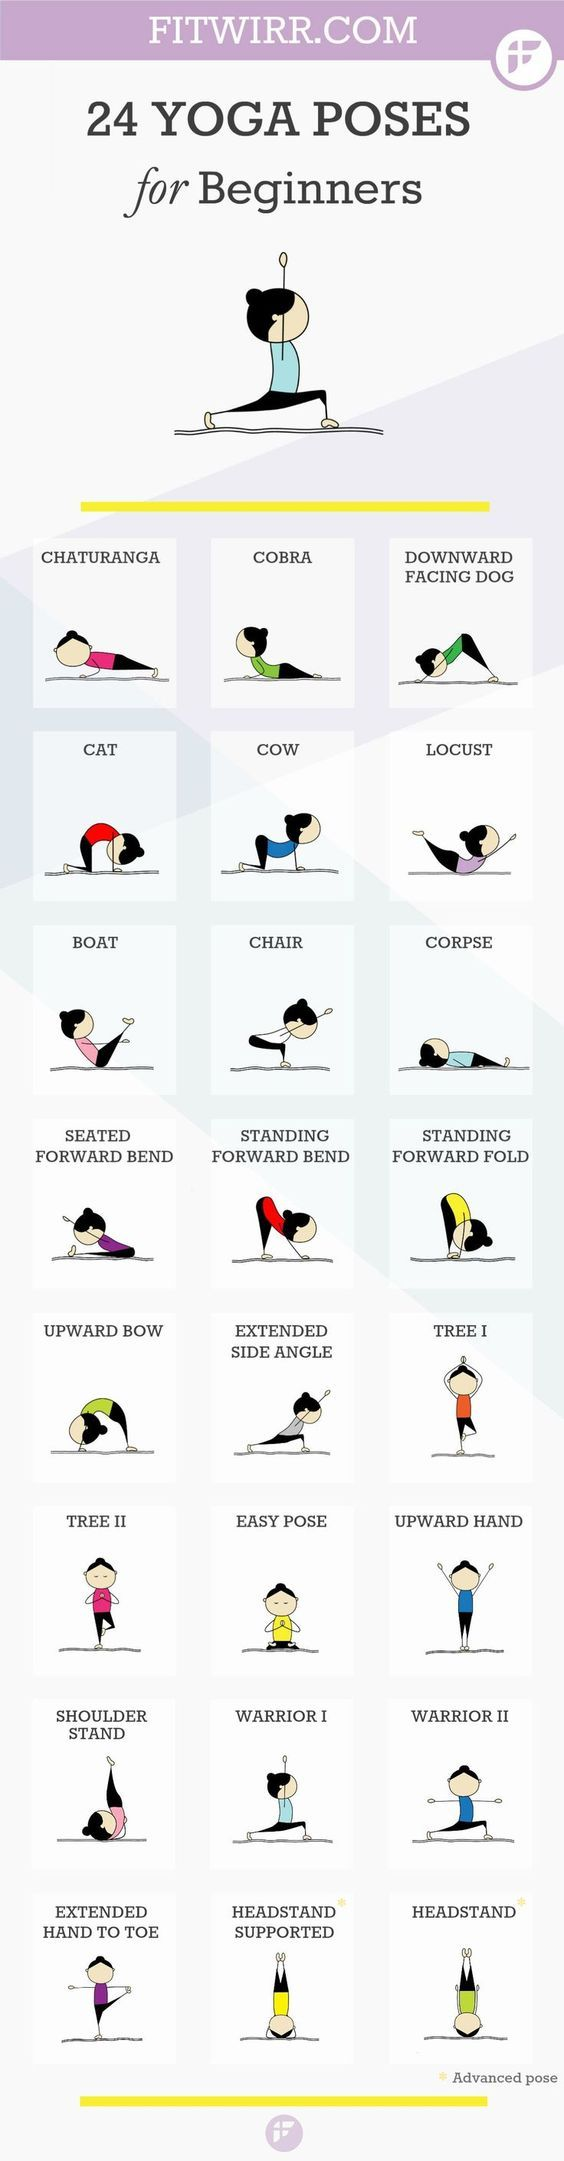 DownDog Healthy Lifestyle Tips: 24 Beginners Yoga Poses You Can Start with at Home. Cute!